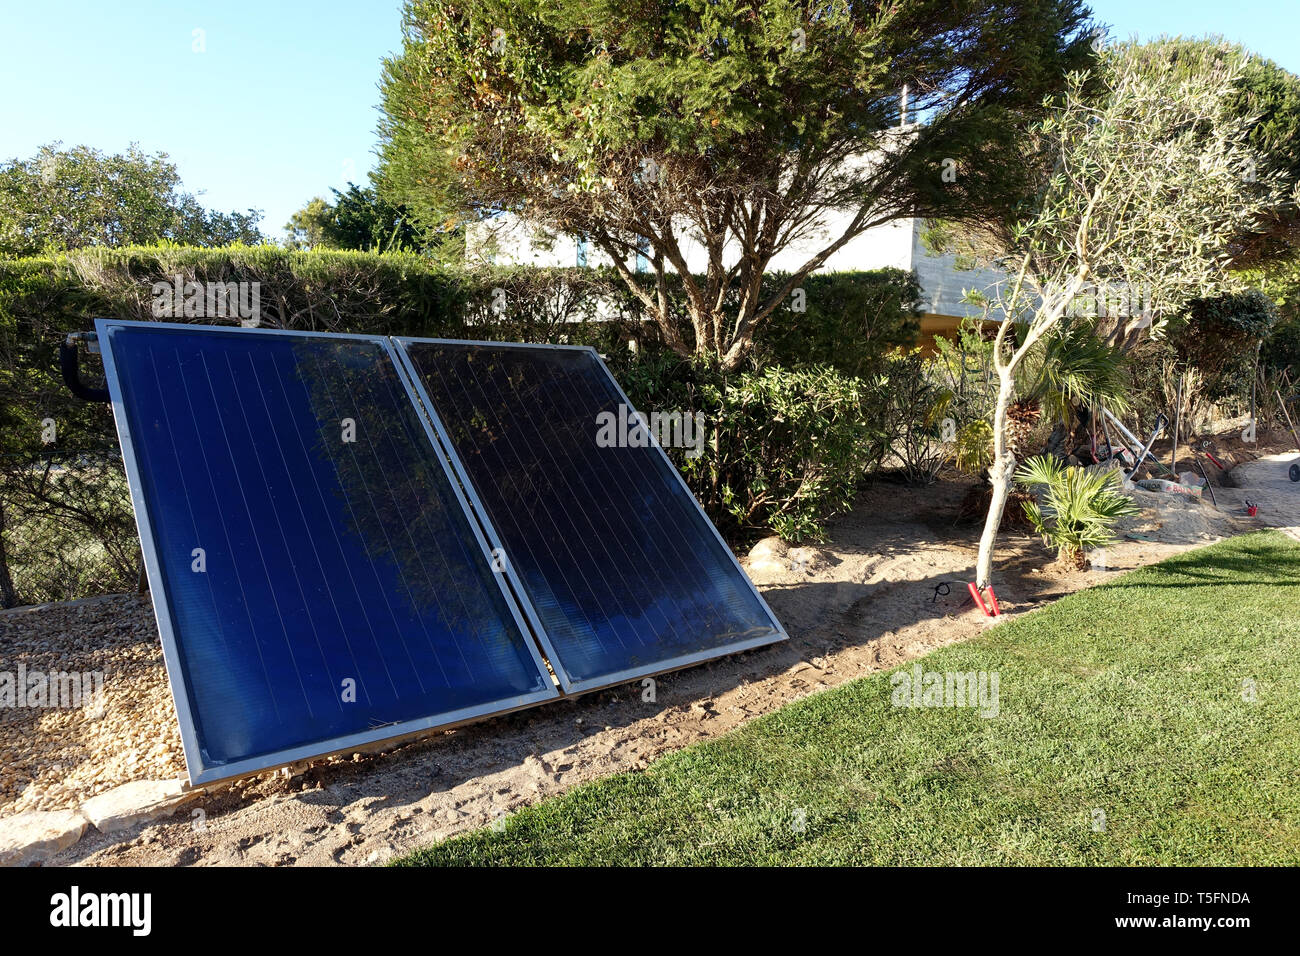 Solar panels in front garden of house - Stock Image